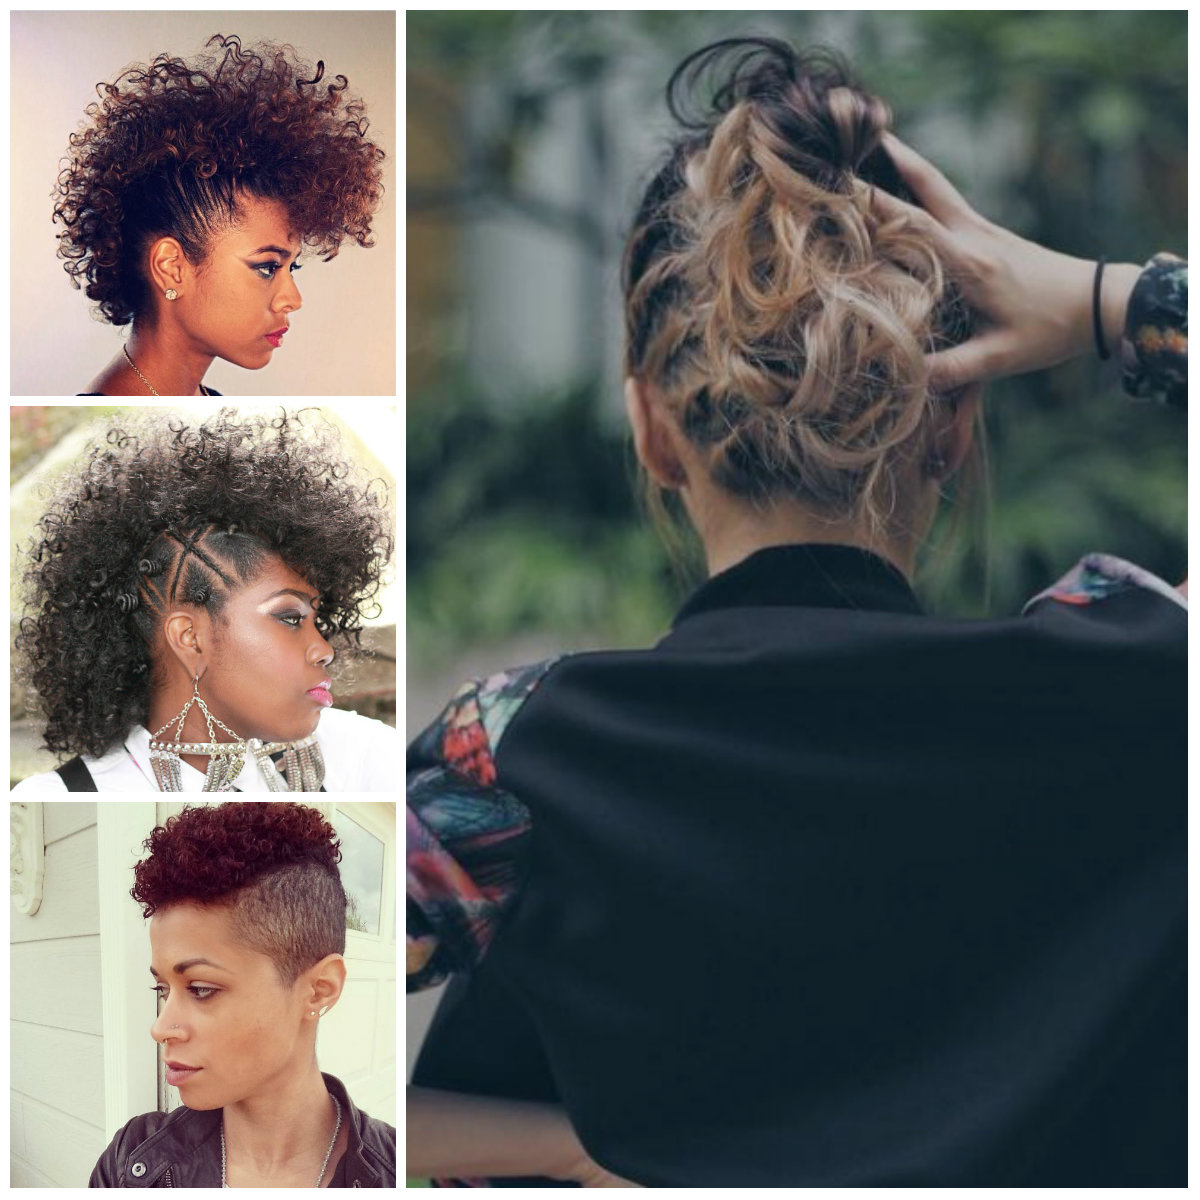 Curly Mohawk Hairstyles for Women 2022